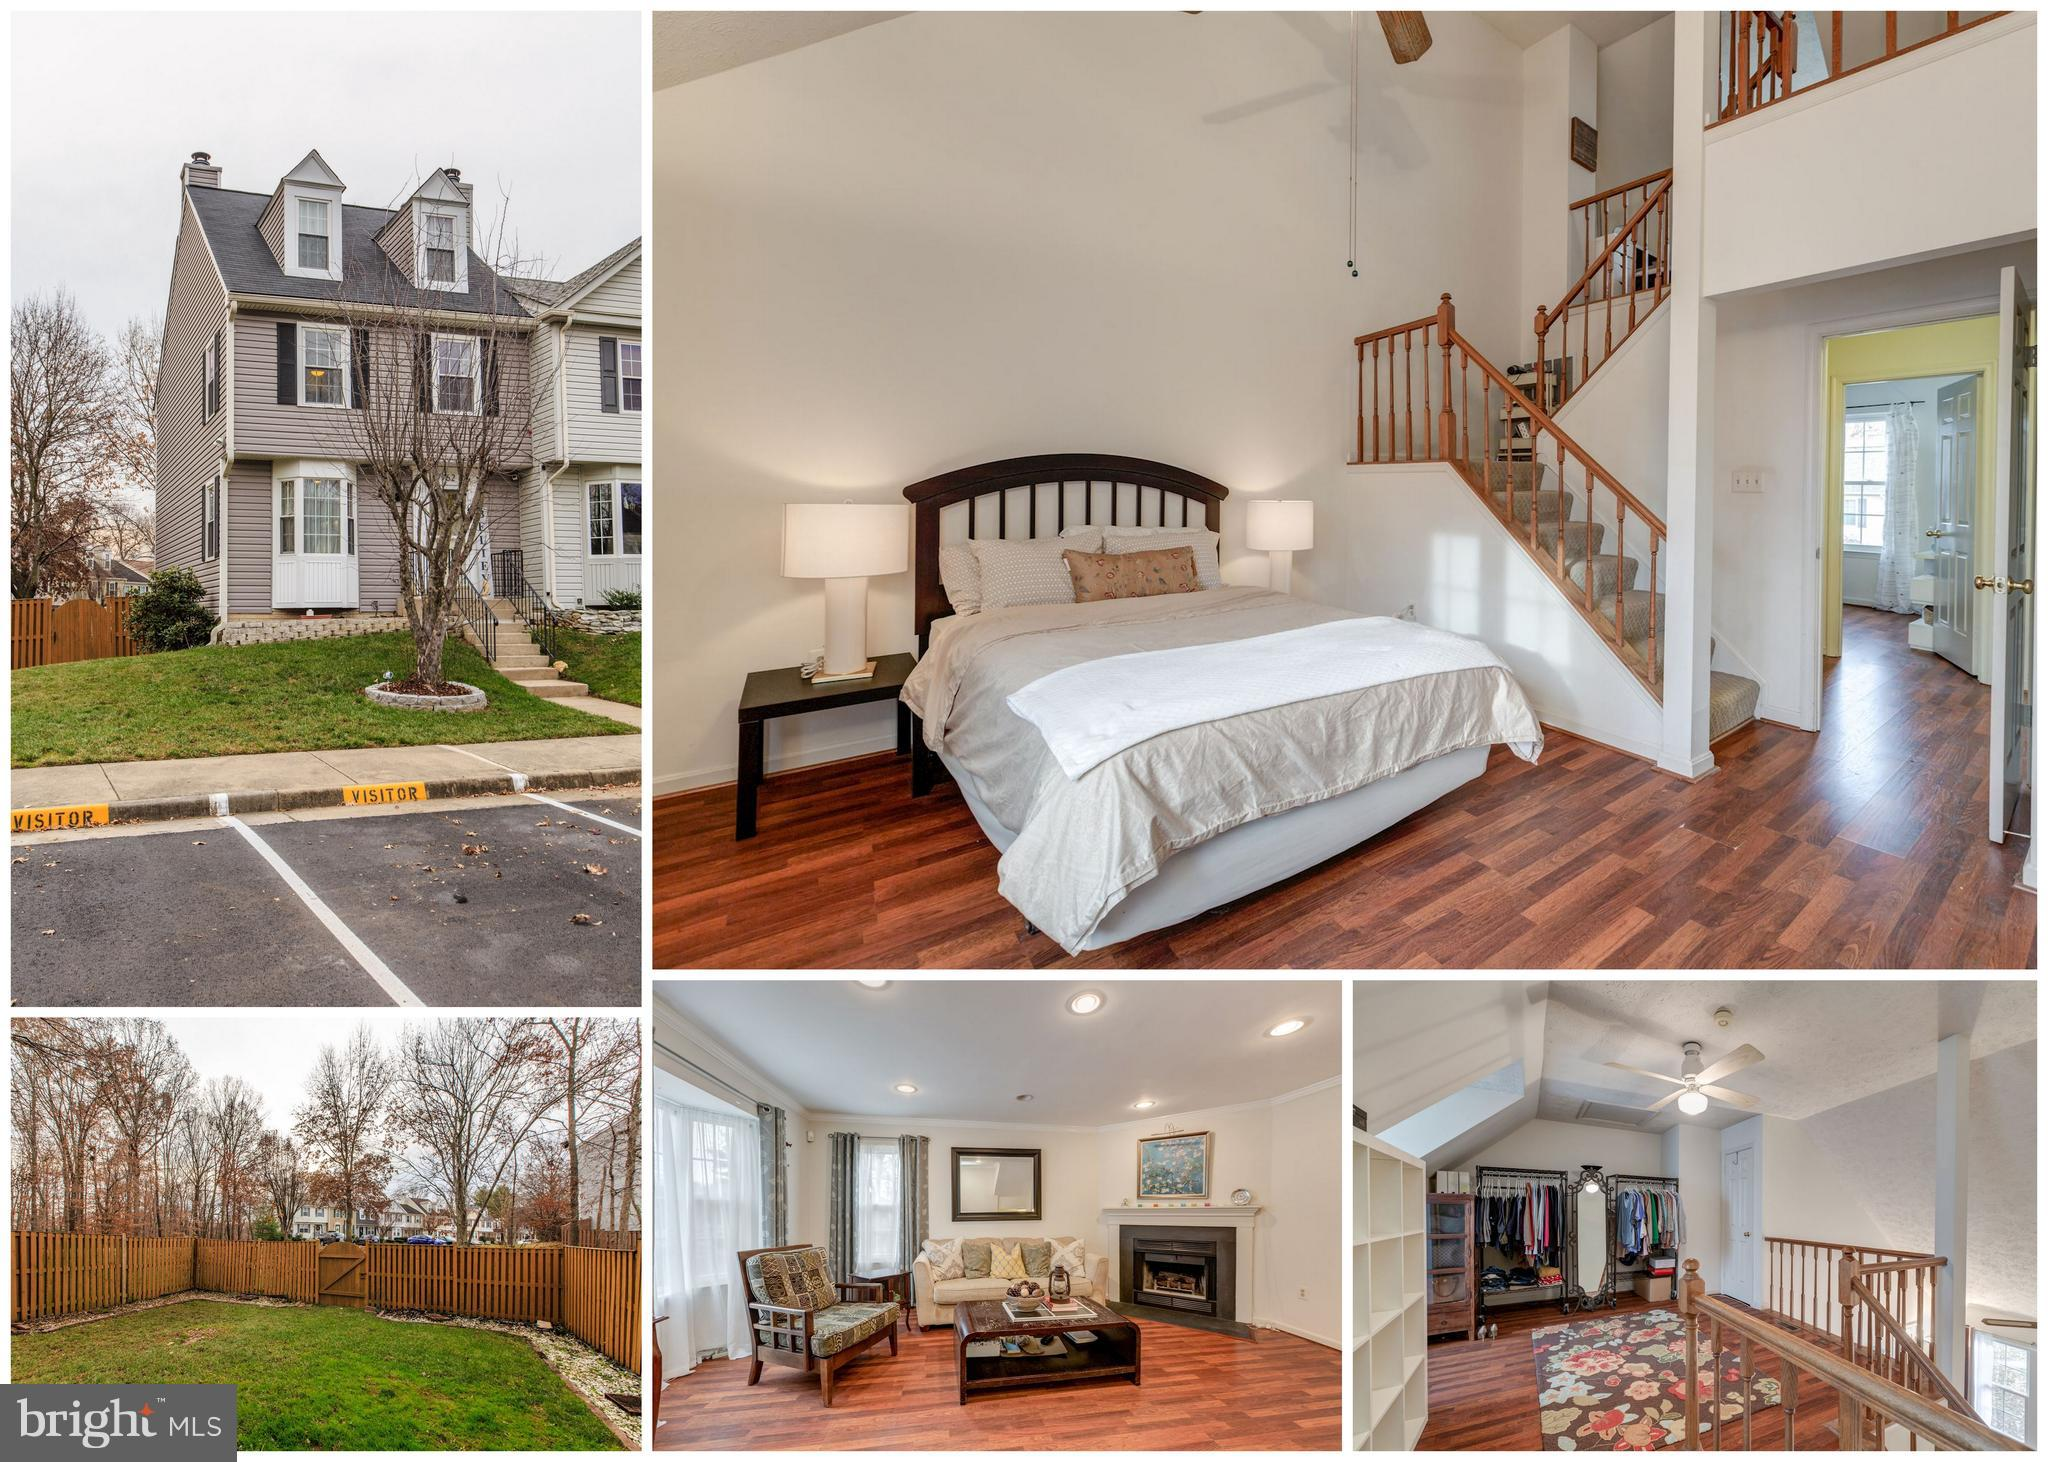 OFFERS DUE TUES 12/18 @ 6pm. You'll love this updated END UNIT townhome on a corner lot in Washington Square.  This Amherst LOFT model is the largest and most rare in the neighborhood.  Recent updates include a new roof, new windows and sliding glass door, all new siding,  newer HVAC,  brand new washer and dryer,  and more! Put your finishing touches on this home that already has the big ticket items taken care of.  Finished basement with tons of storage.  Master BR with en-suite bath and walk-in-closet. The versatile extra loft space is great for an office, mega-closet, den, nursery, game room,  or 4th bedroom.  It's an amazing location perfect for commuters. Take the paved path to VRE and Lorton Station shops & restaurants - only a 3-5 minute walk!  Close to I-95, Ft. Belvoir,  RT-1, Wegman's &  more shopping.   Tons of storage!  Finished walk-out basement leads to the patio and large fenced rear and side yard.  Washington Square has tennis courts and playgrounds while conveniently near parks, dining, shopping, and commuter routes.